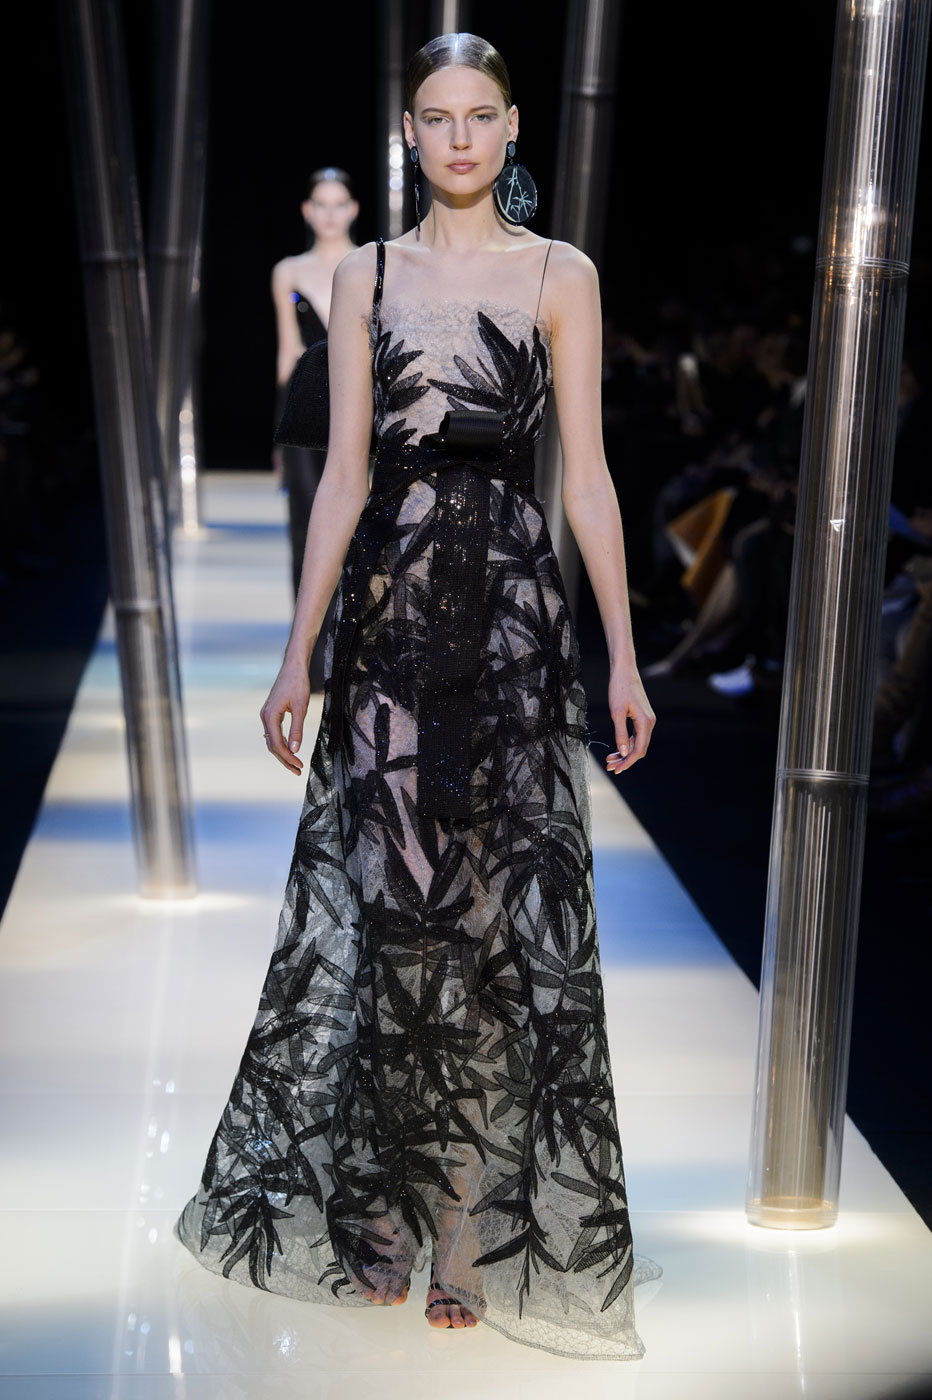 Giorgio-armani-Prive-fashion-runway-show-haute-couture-paris-spring-2015-the-impression-105